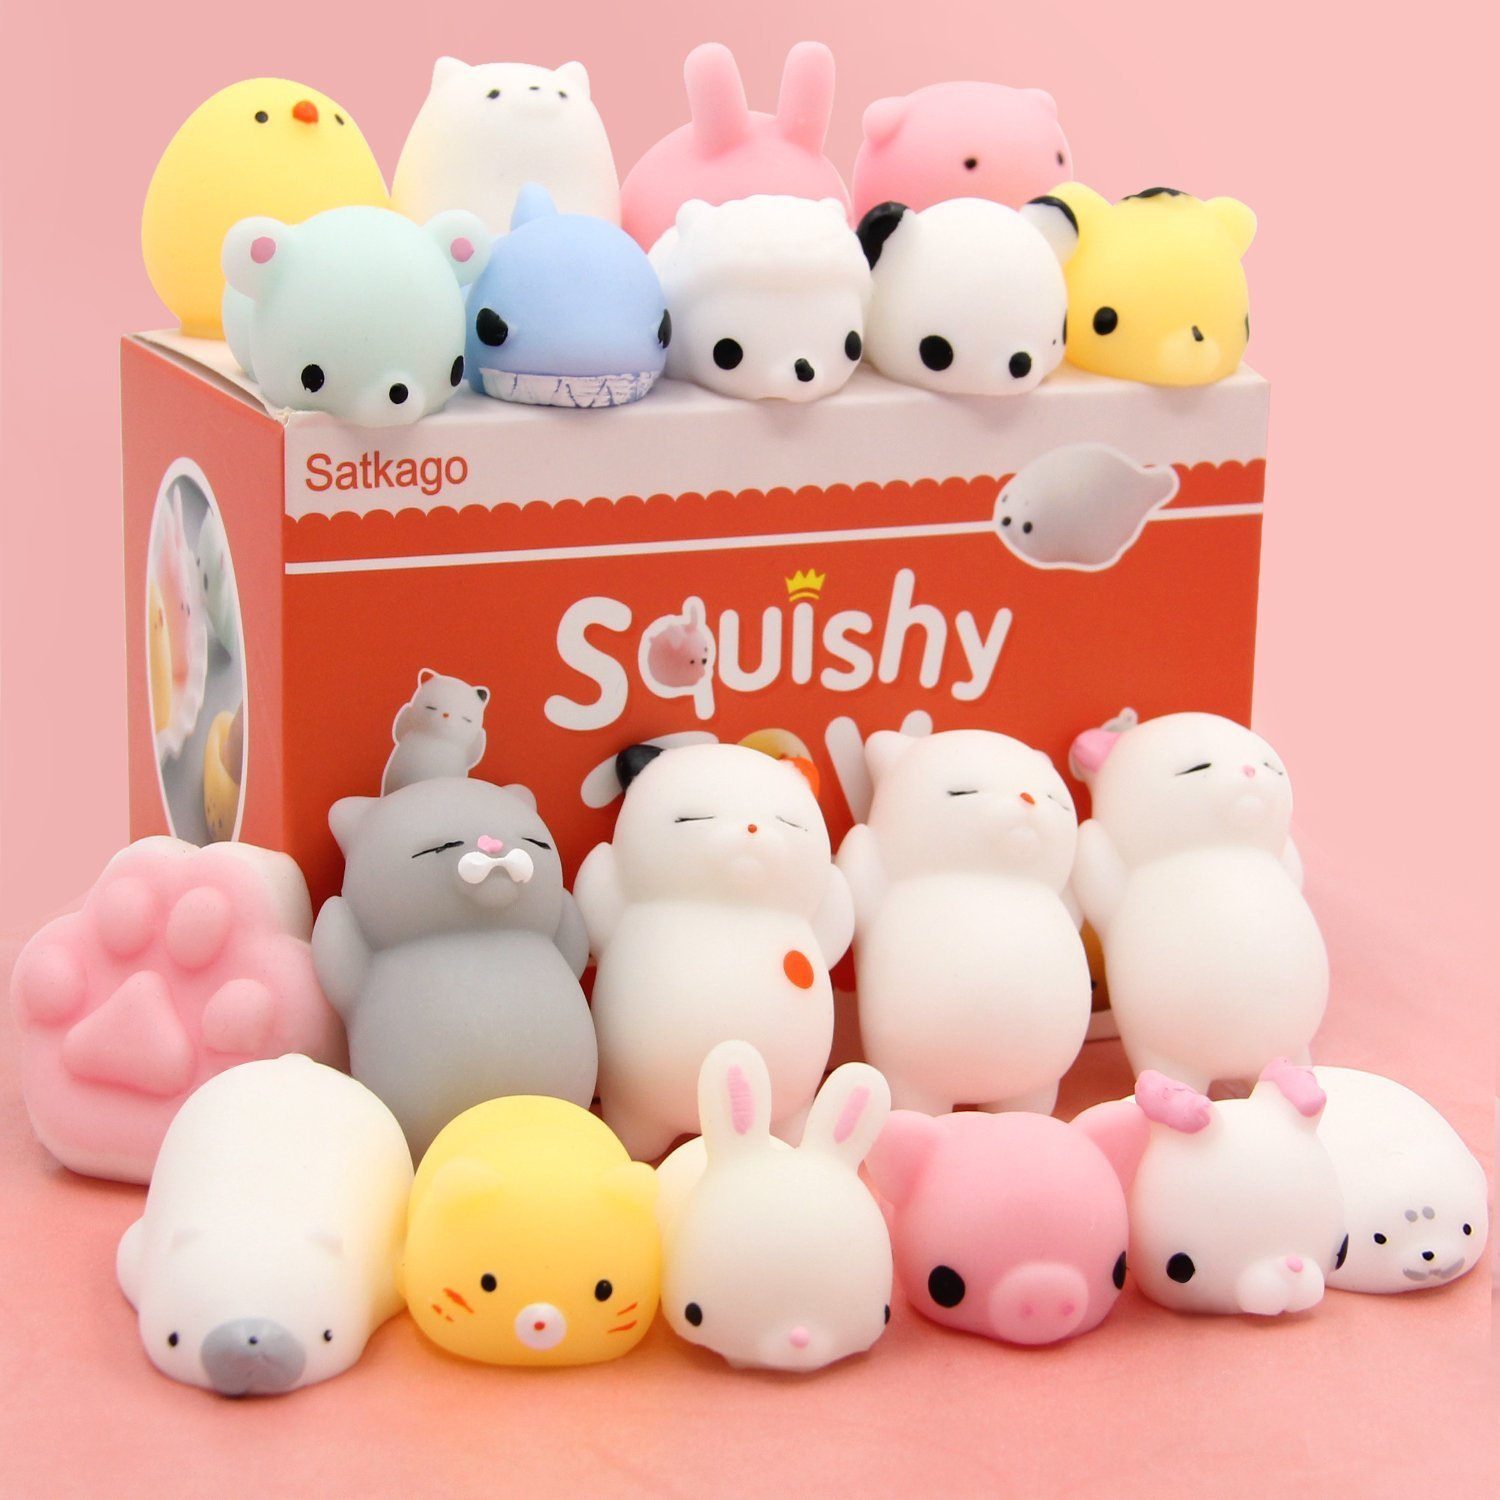 Squishy Toys Pictures : Amazon.com : Squishy Cats Toys HAIYOO 9 Pcs Kawaii Soft Cats Squishies Mochi Squishy Squeeze ...